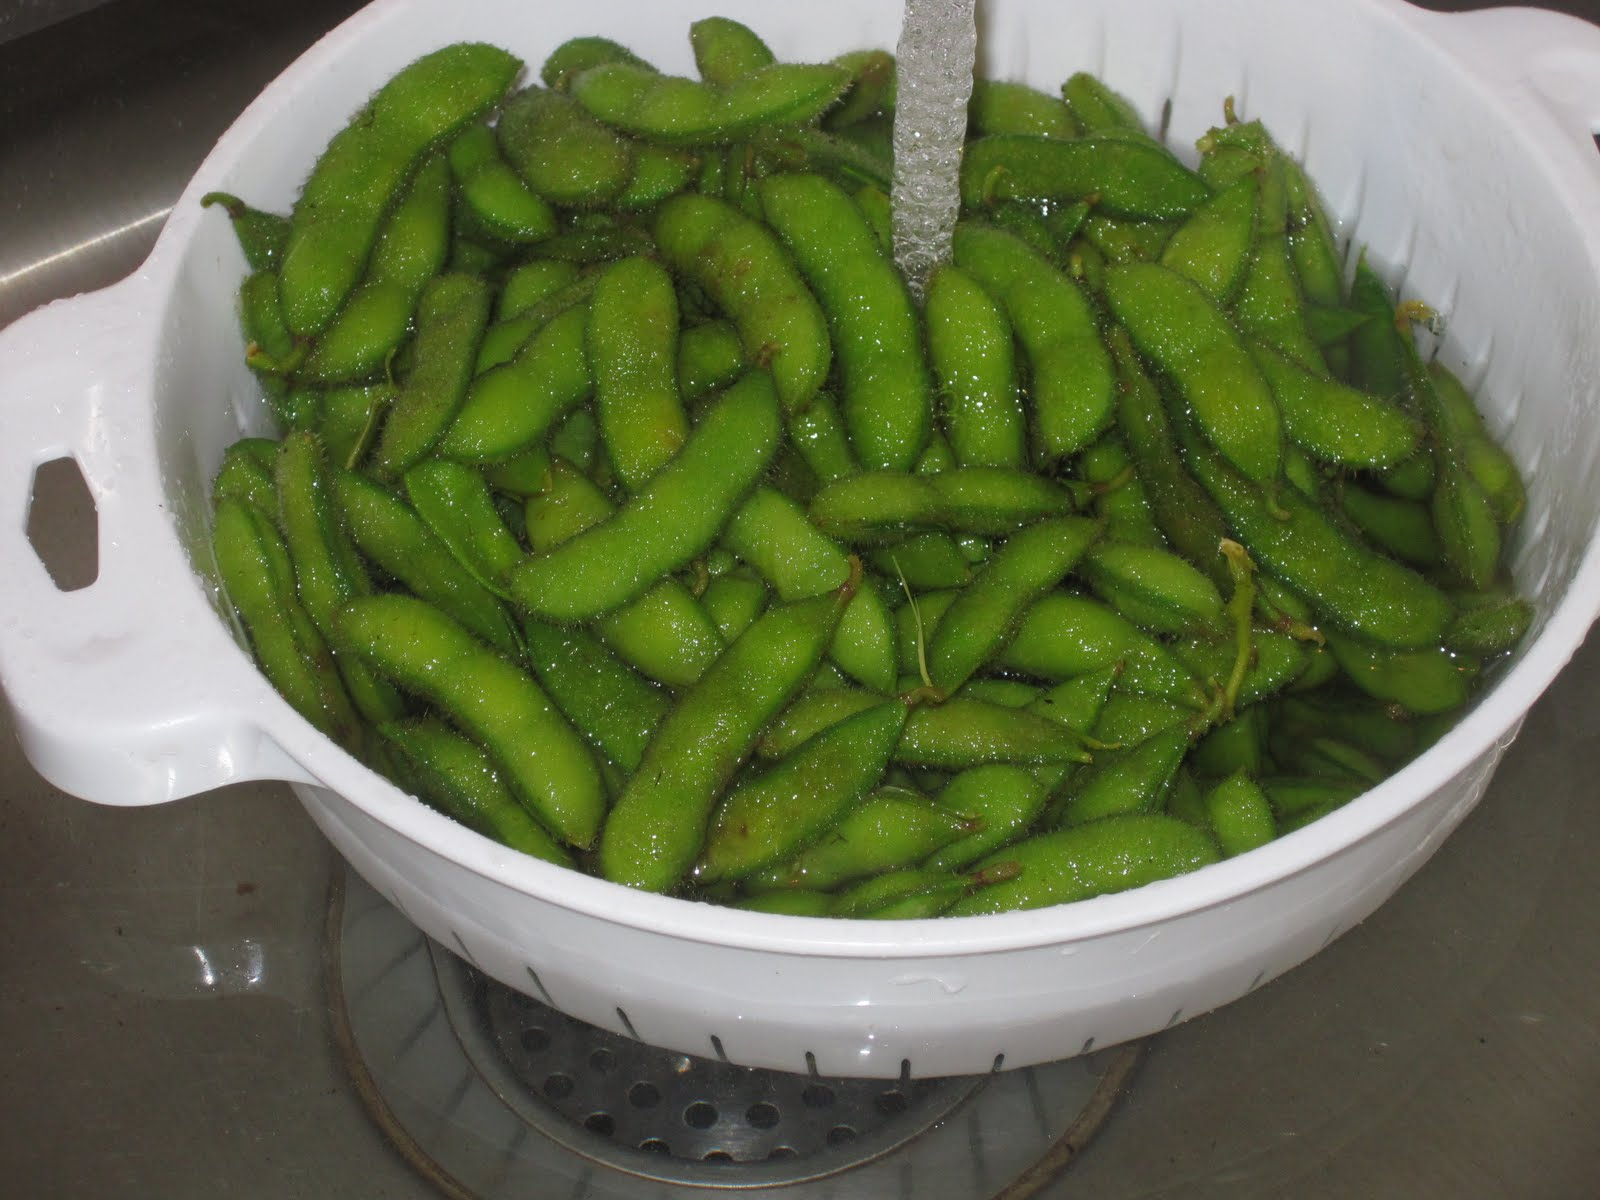 Marisa Makes: Grow Your Own Edamame